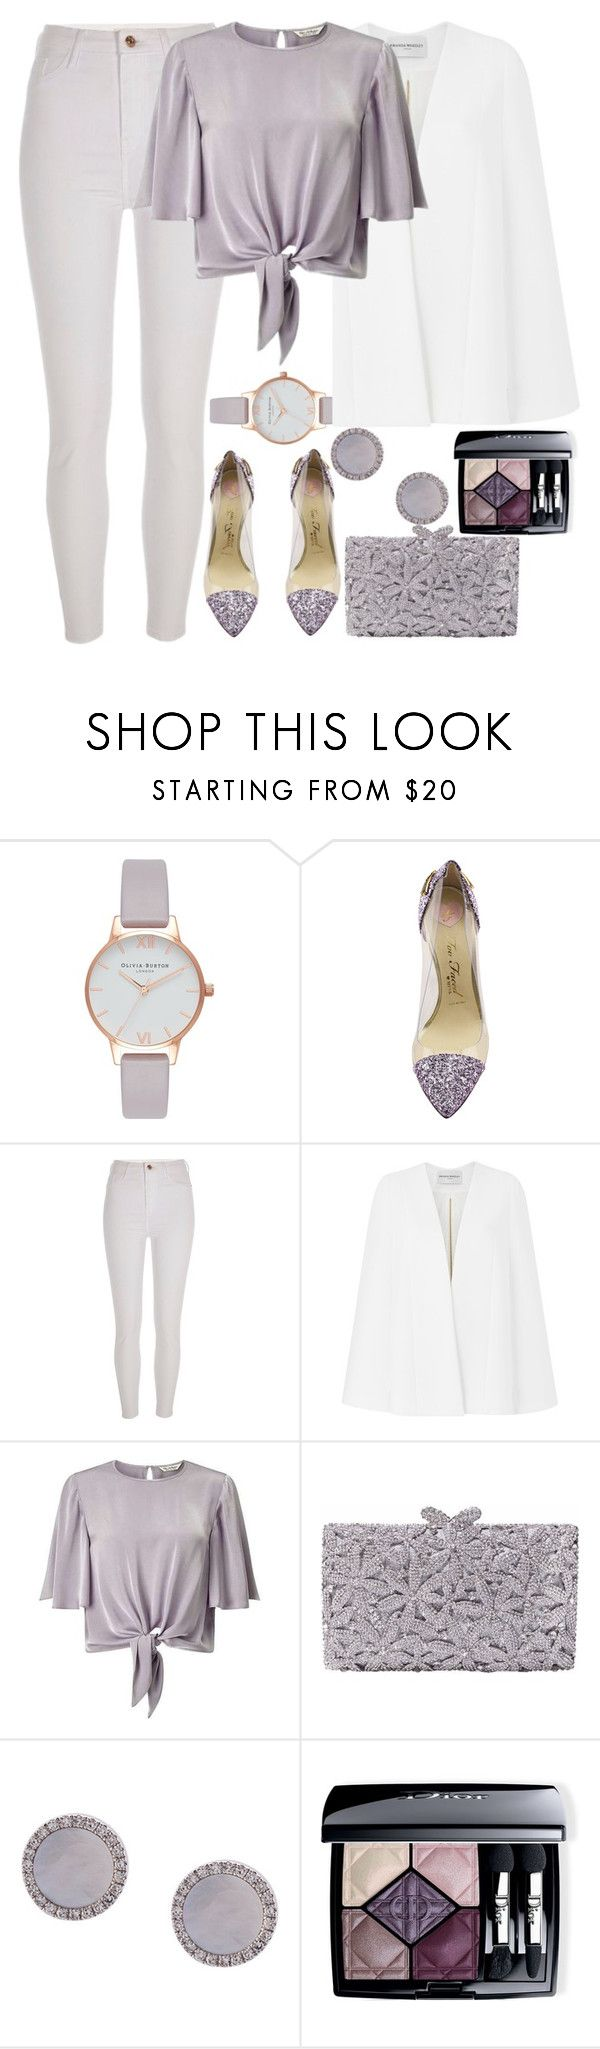 """Lavander look"" by mihai-theodora ❤ liked on Polyvore featuring Olivia Burton, Too Faced Cosmetics, River Island, Amanda Wakeley, Miss Selfridge, Nissa Jewelry, EF Collection and Christian Dior"